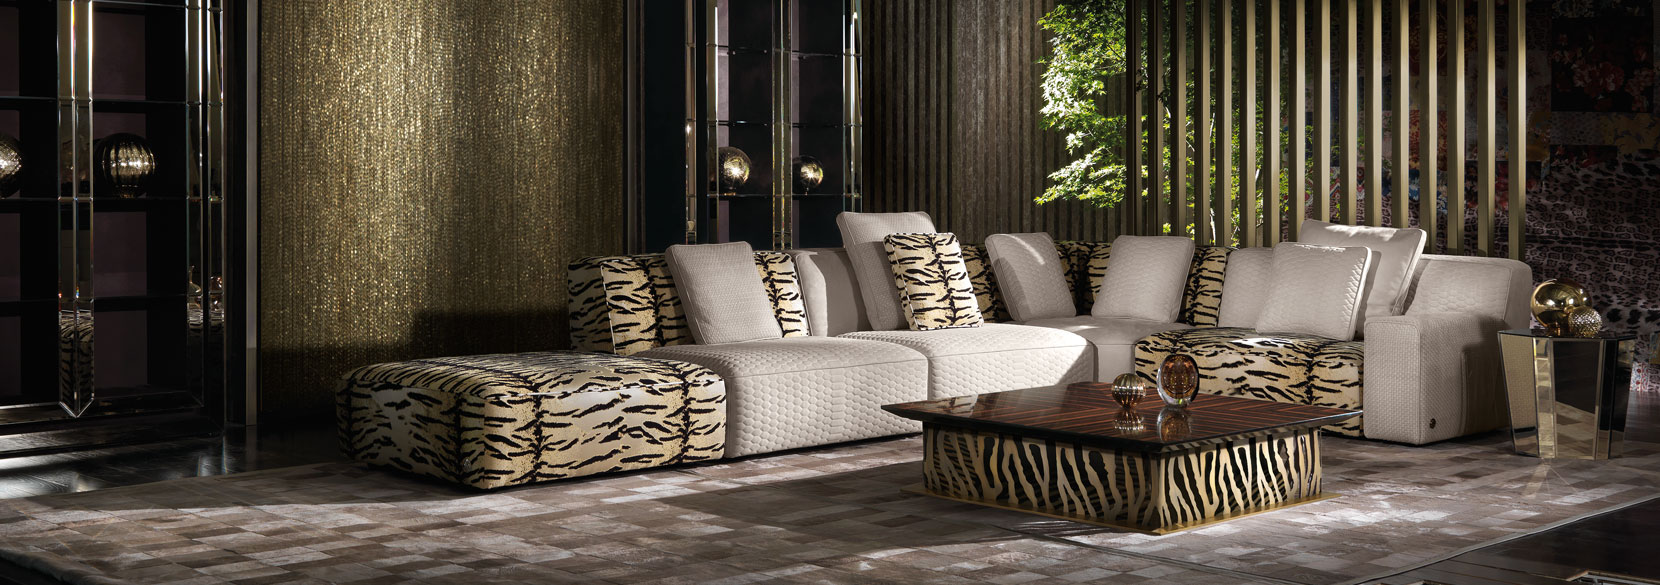 Roberto-Cavalli-home-interiors-decor-fashion